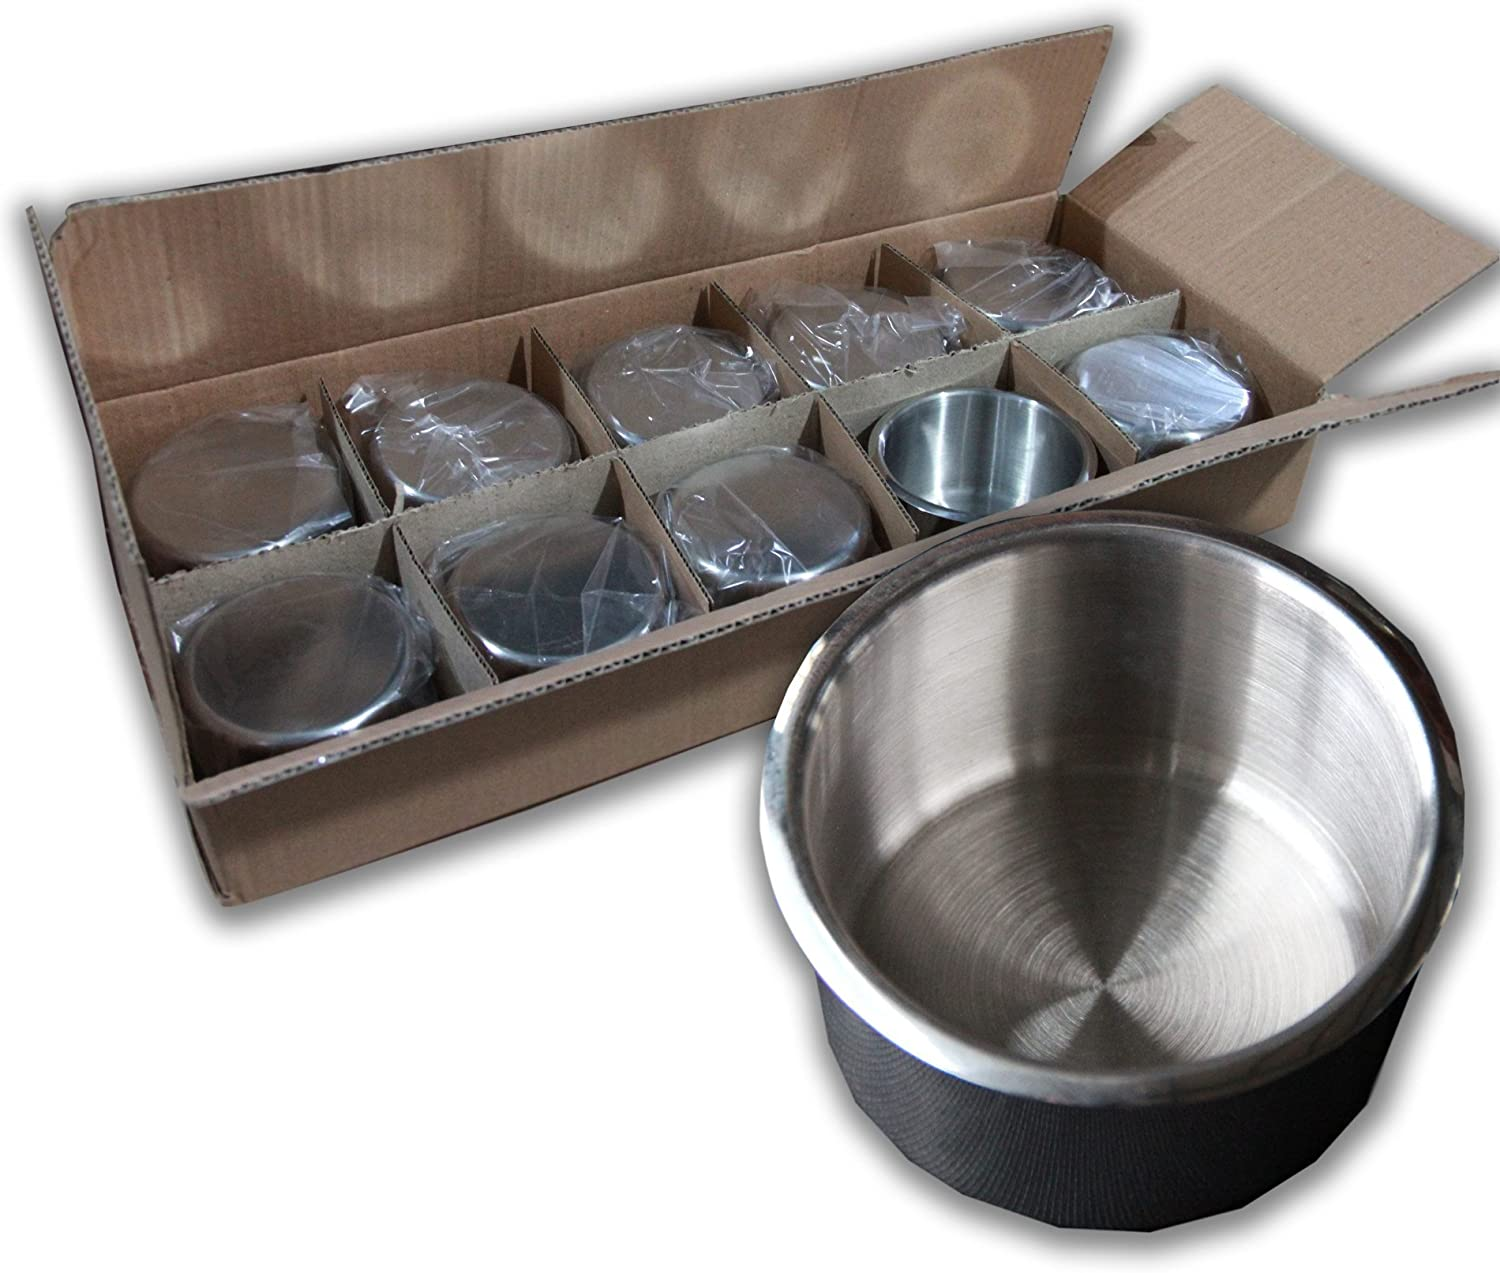 IDS 10PCS Stainless Steel Poker Max 56% OFF Size Holder Cup Table Max 85% OFF Regular